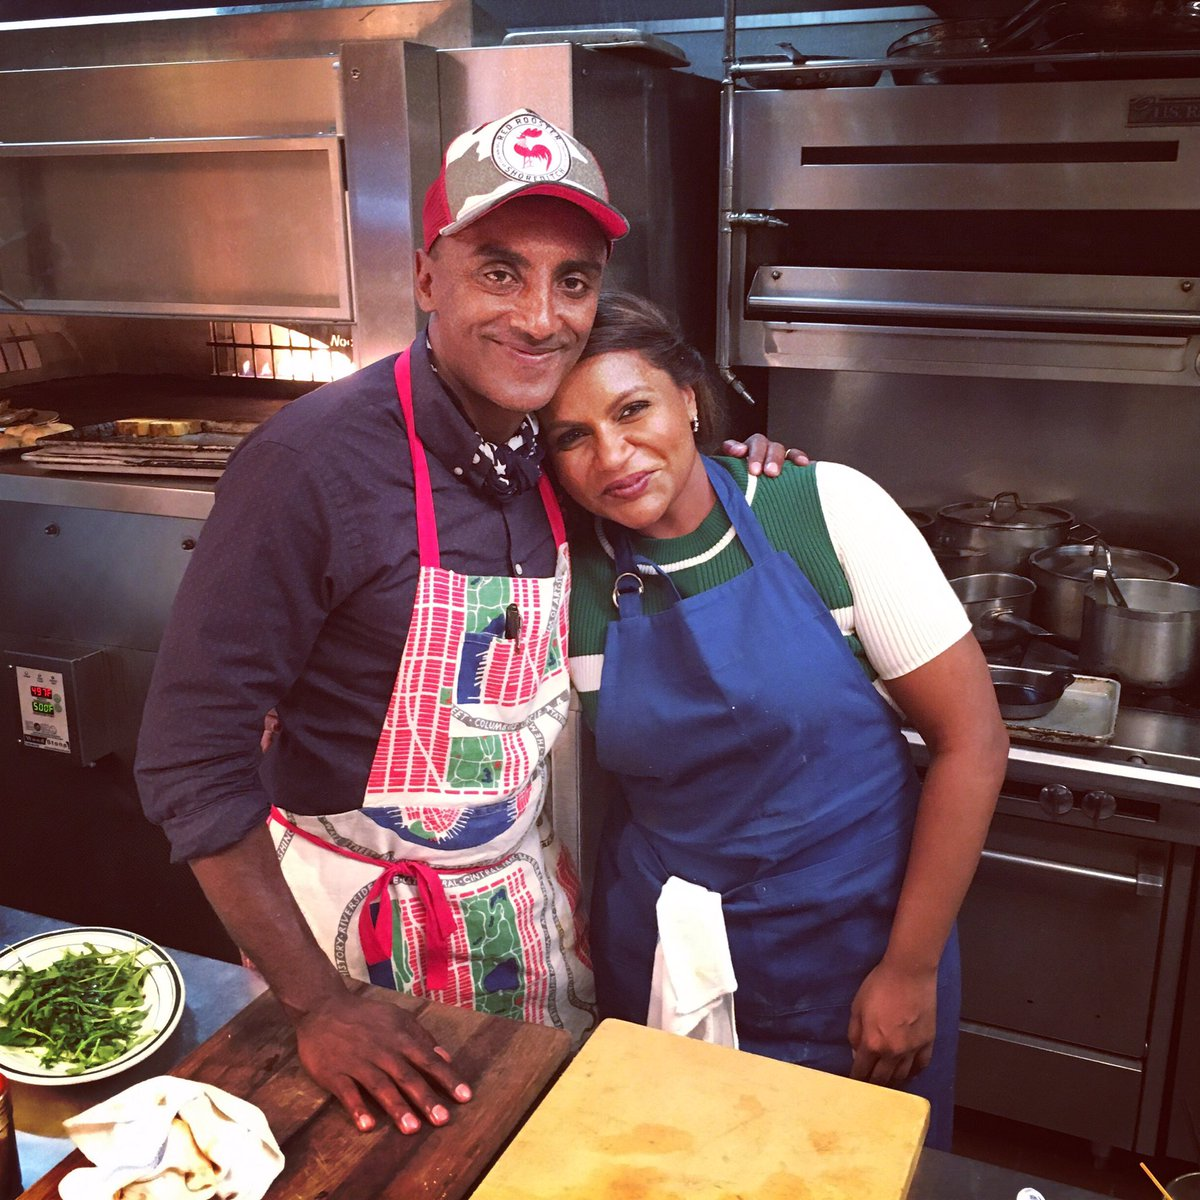 Mindy Kaling On Twitter Me And My Protegee Marcuscooks I Think He Learned A Lot Today